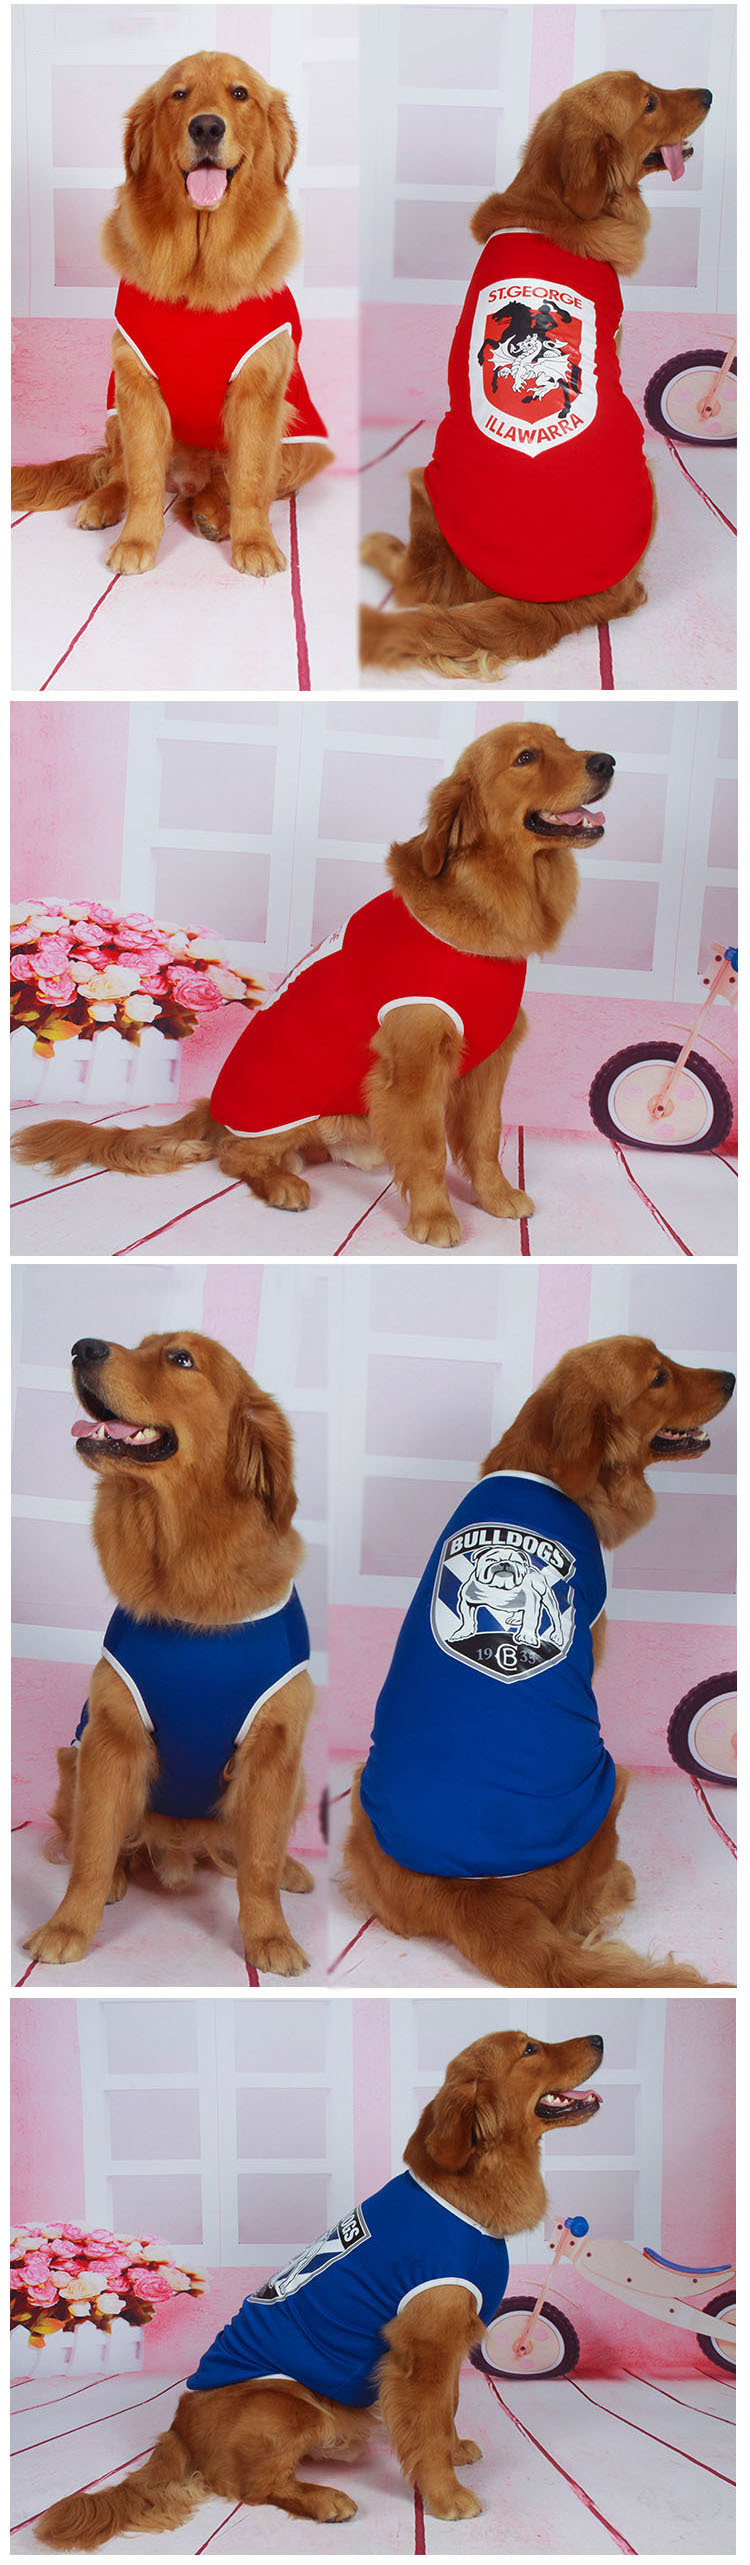 bulldog clothes for dogs (9)